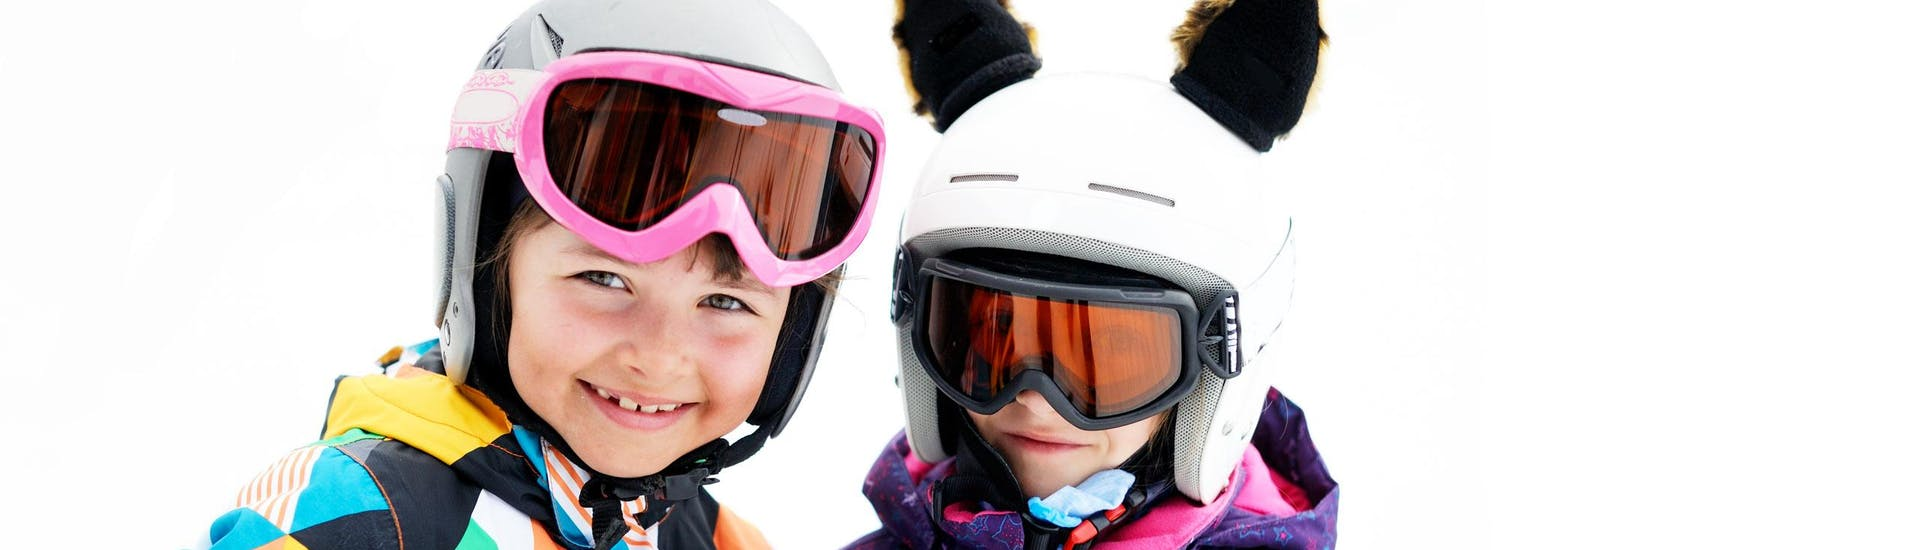 Two young children smiling at the camera during one of the Kids Ski Lessons with Kindergarden (3-5 y.) organised by S4 Snowsport Fieberbrunn.